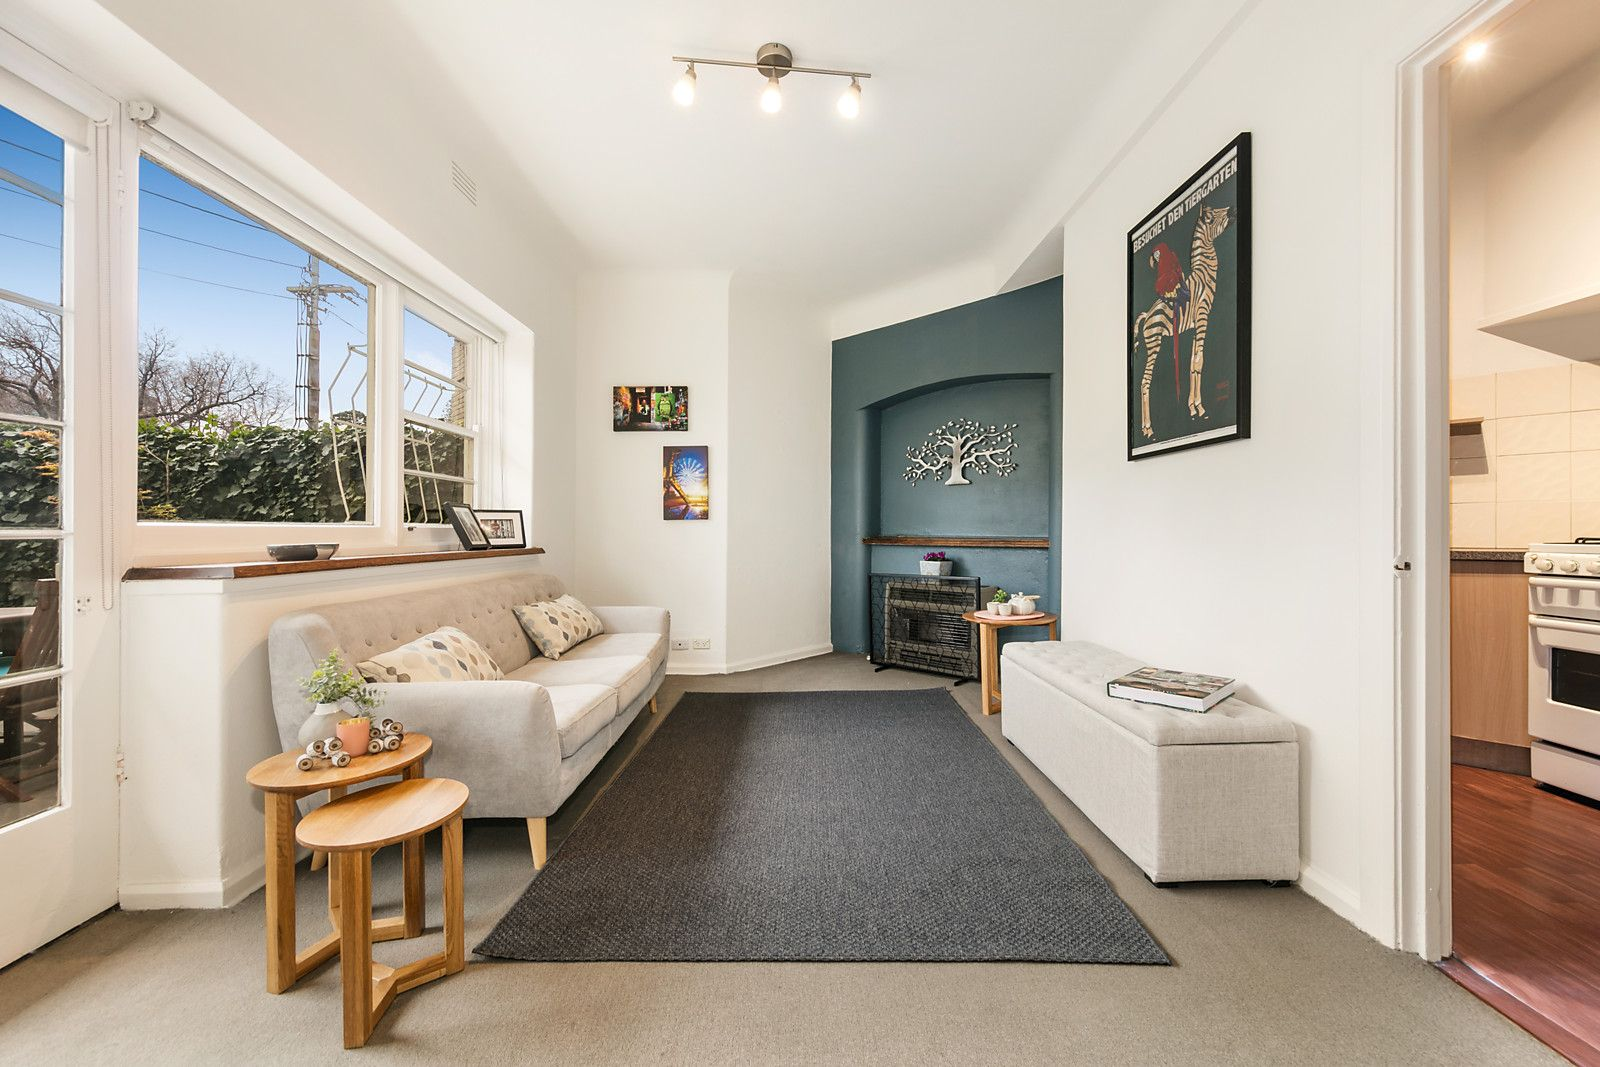 2/161 Wellington Parade South, East Melbourne VIC 3002, Image 1